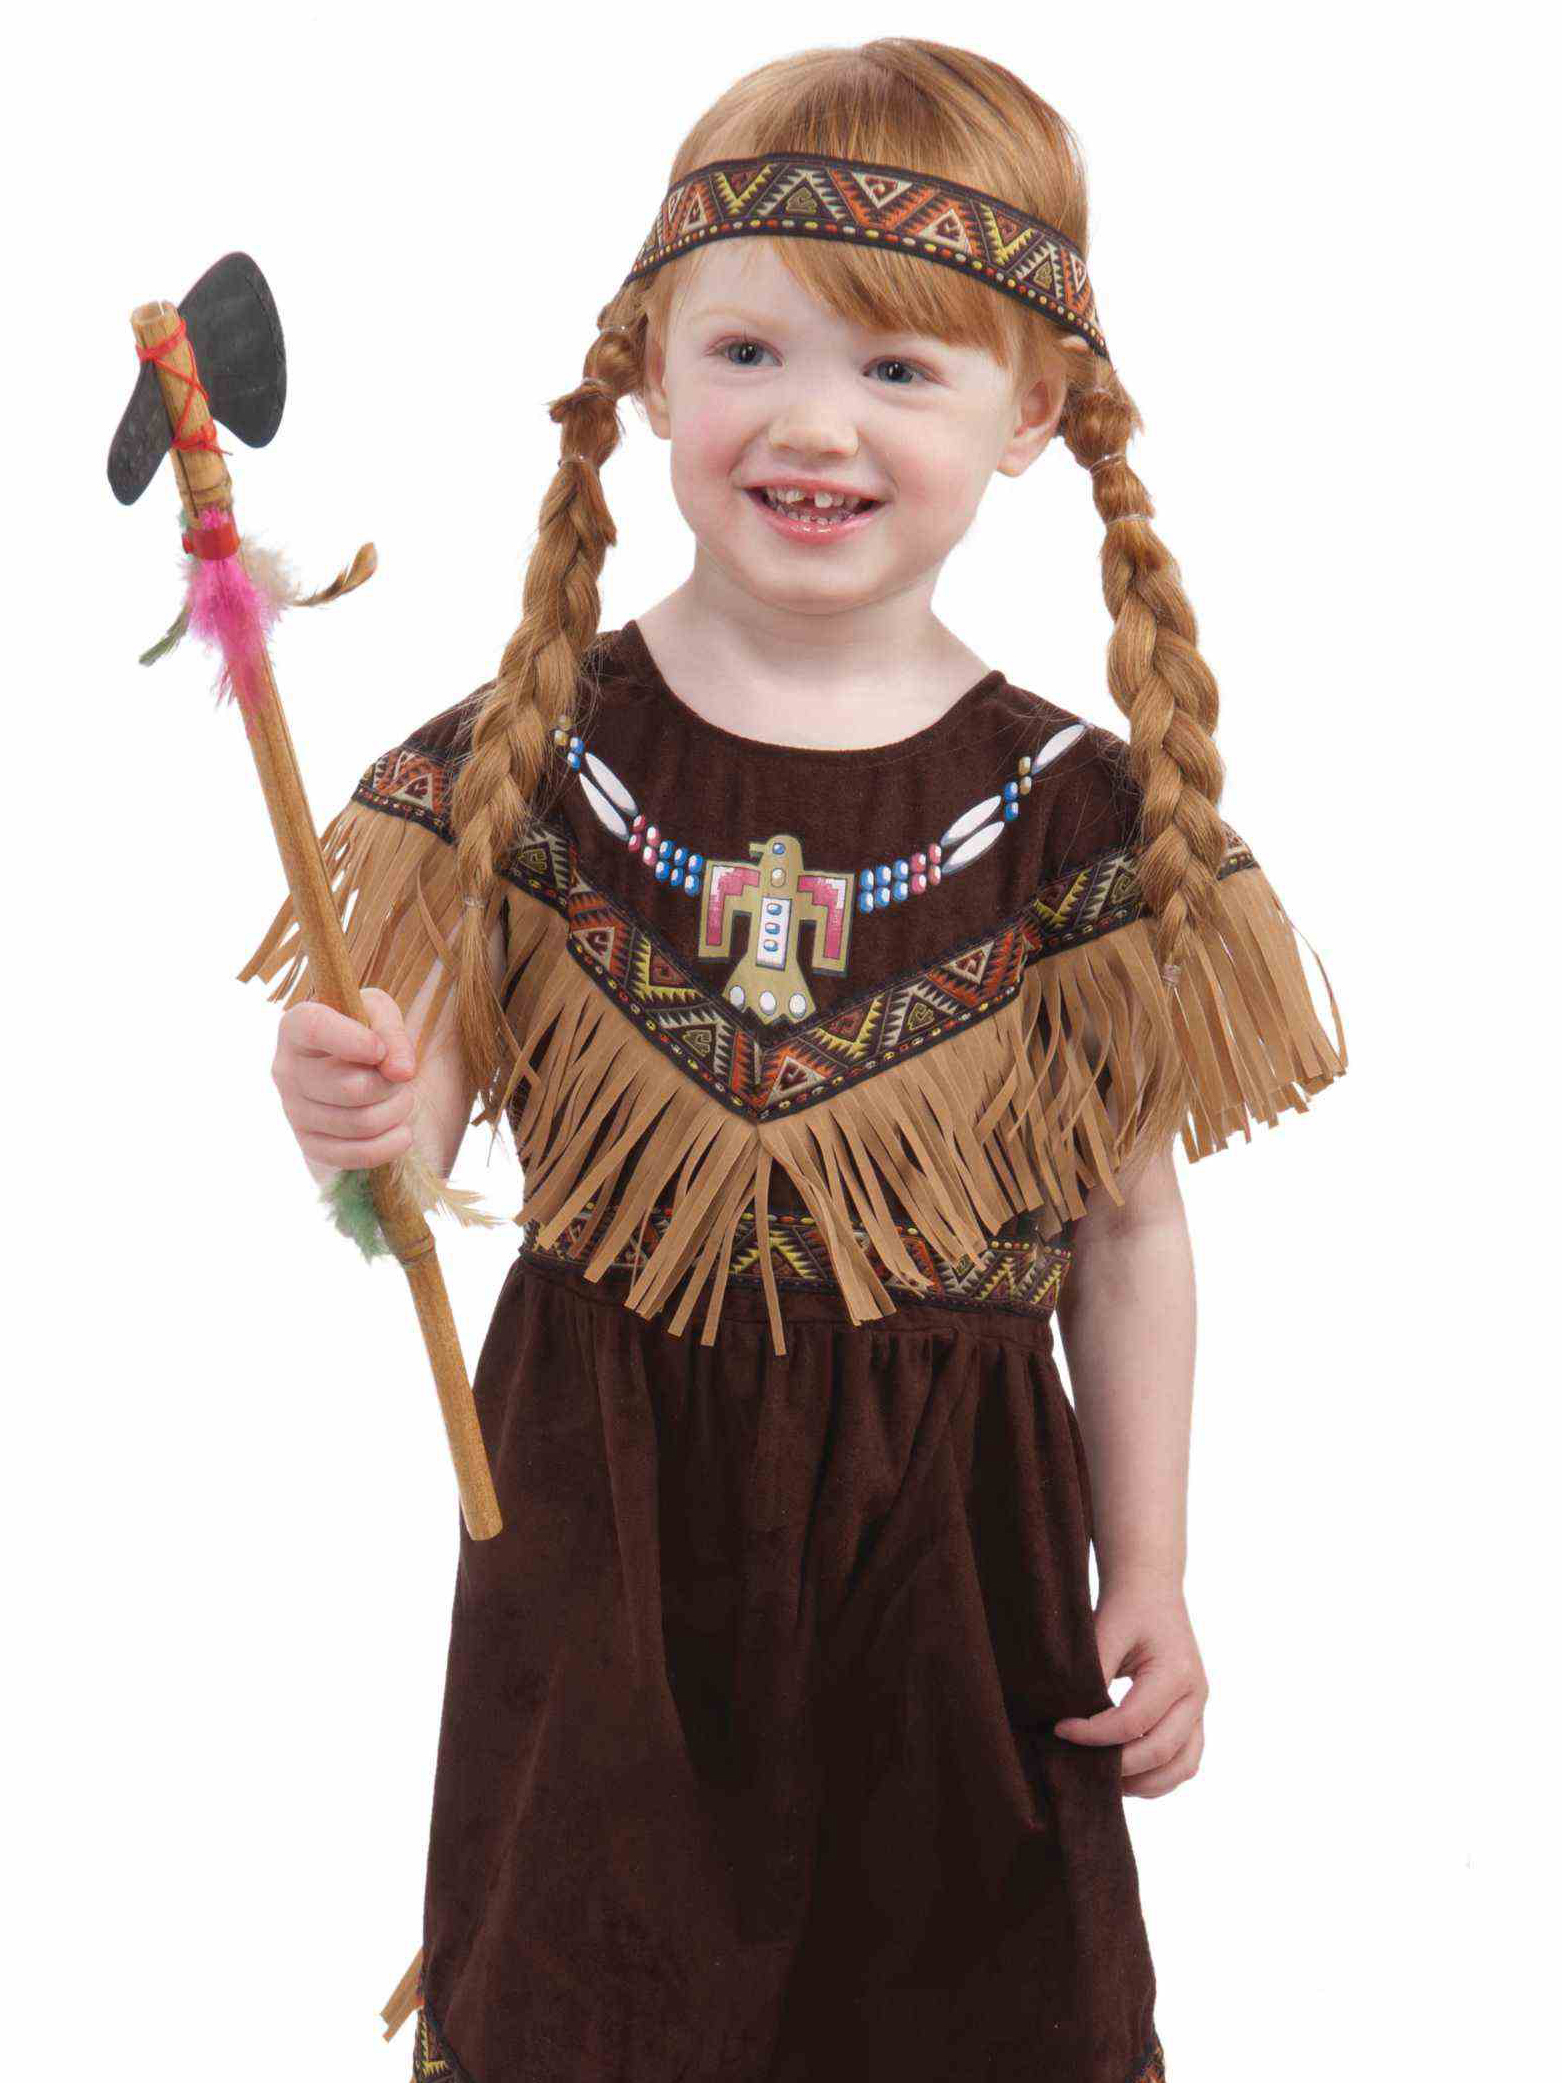 little red headed girl wearing pocahontas costume with fringe and ax